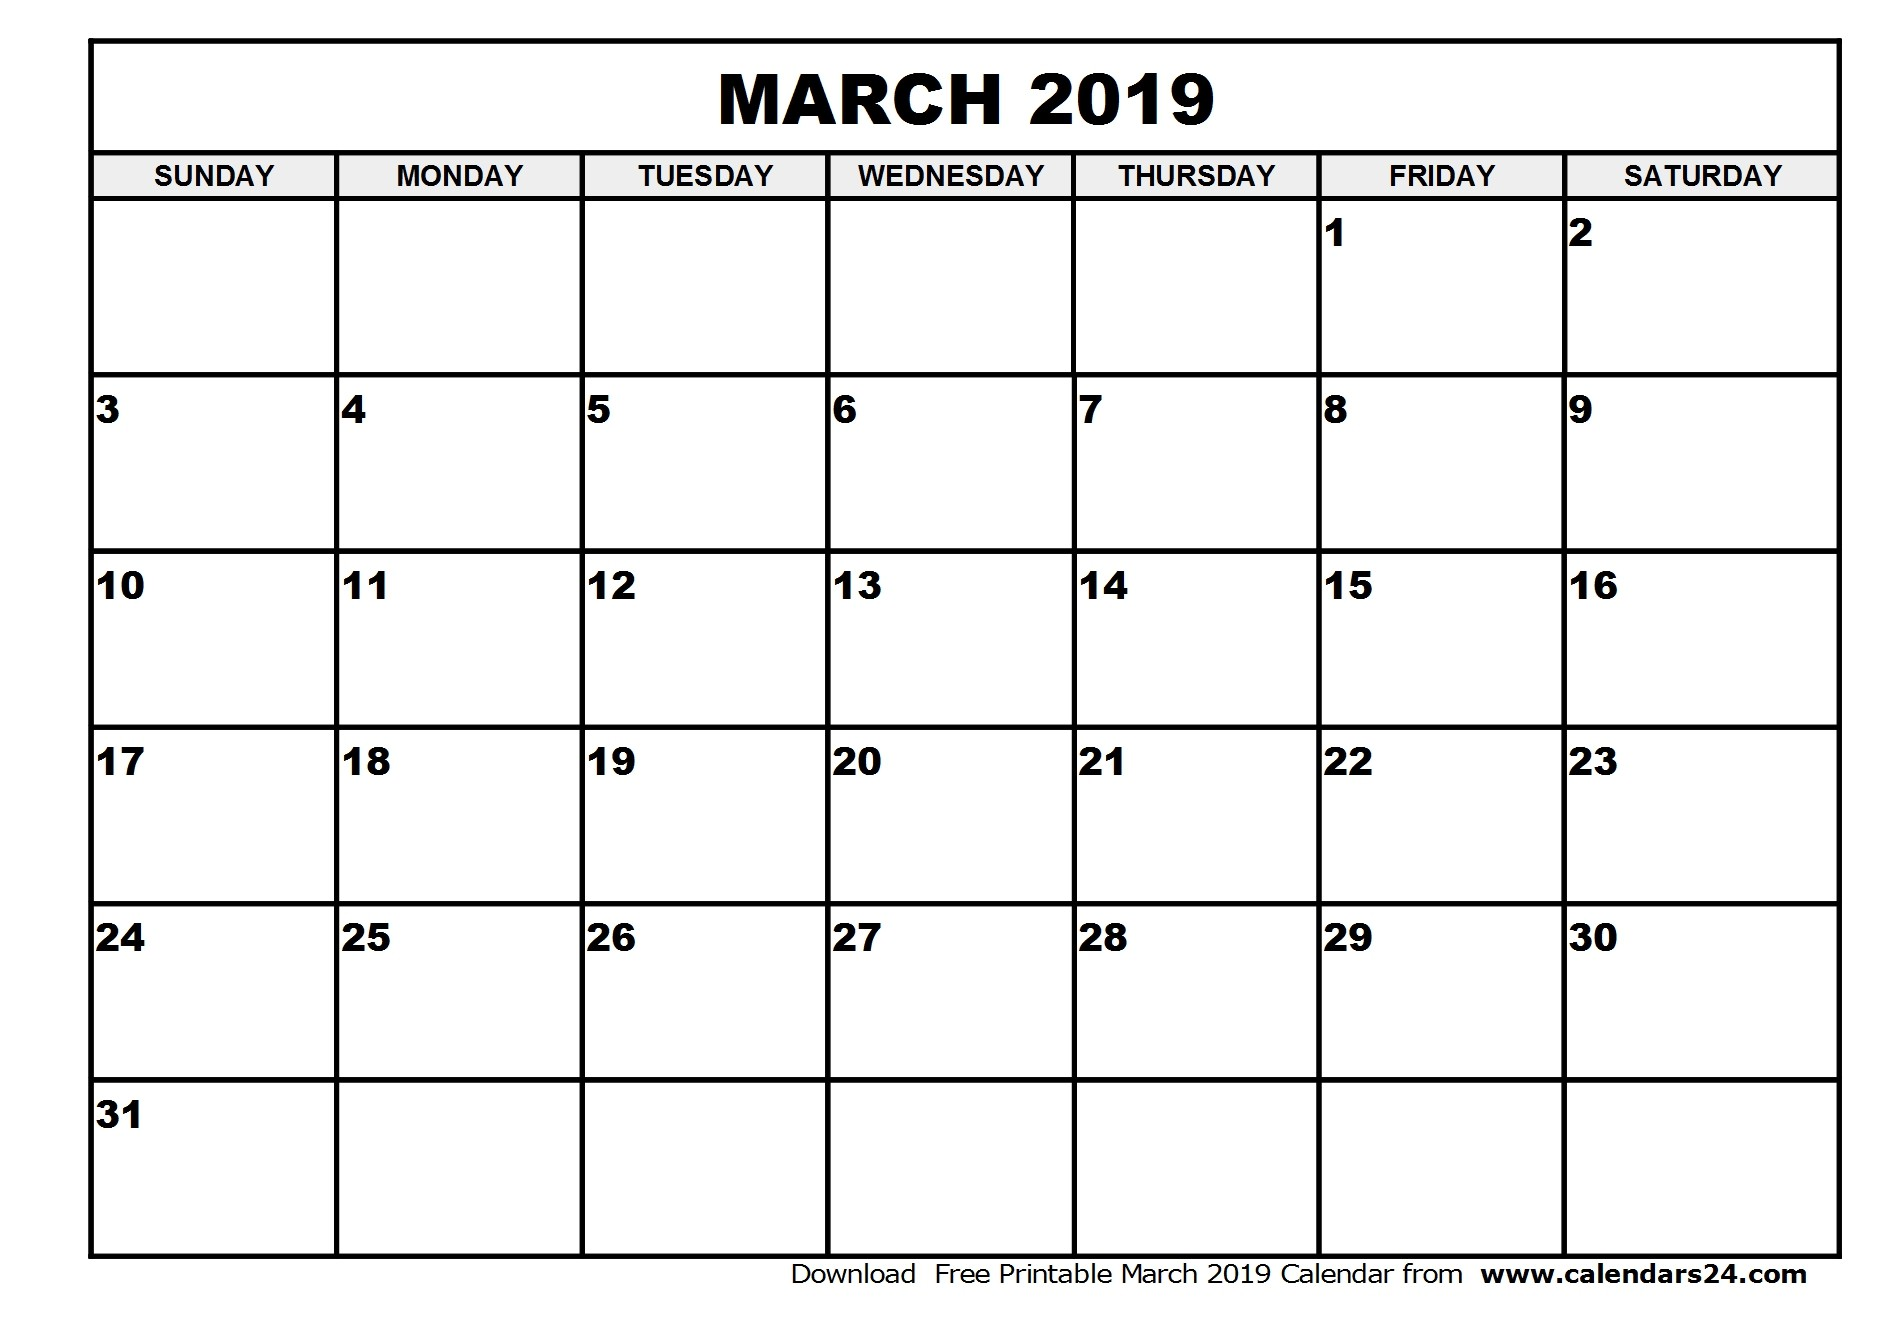 Printable Blank Calendar March 2019 Template PDF